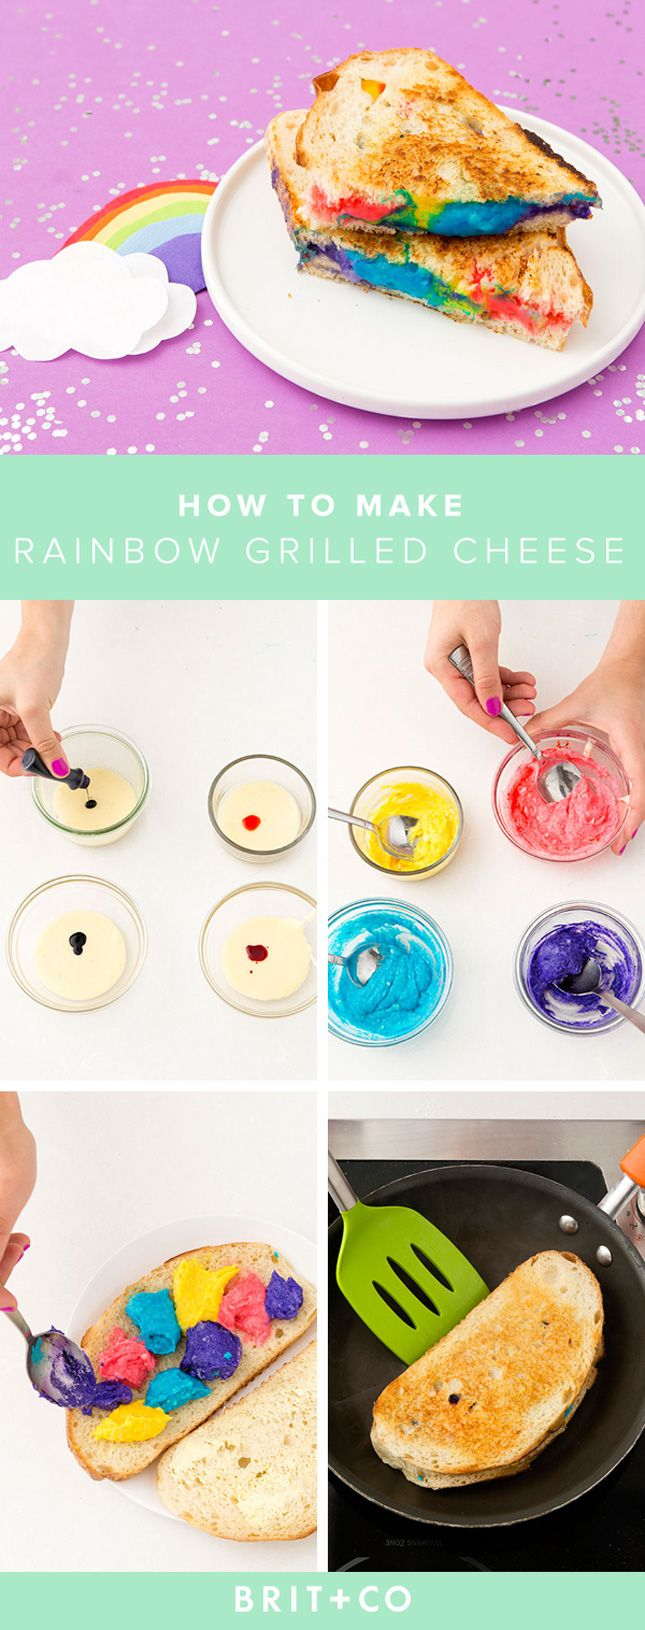 How delicious does this Rainbow Grilled Cheese recipe look?!